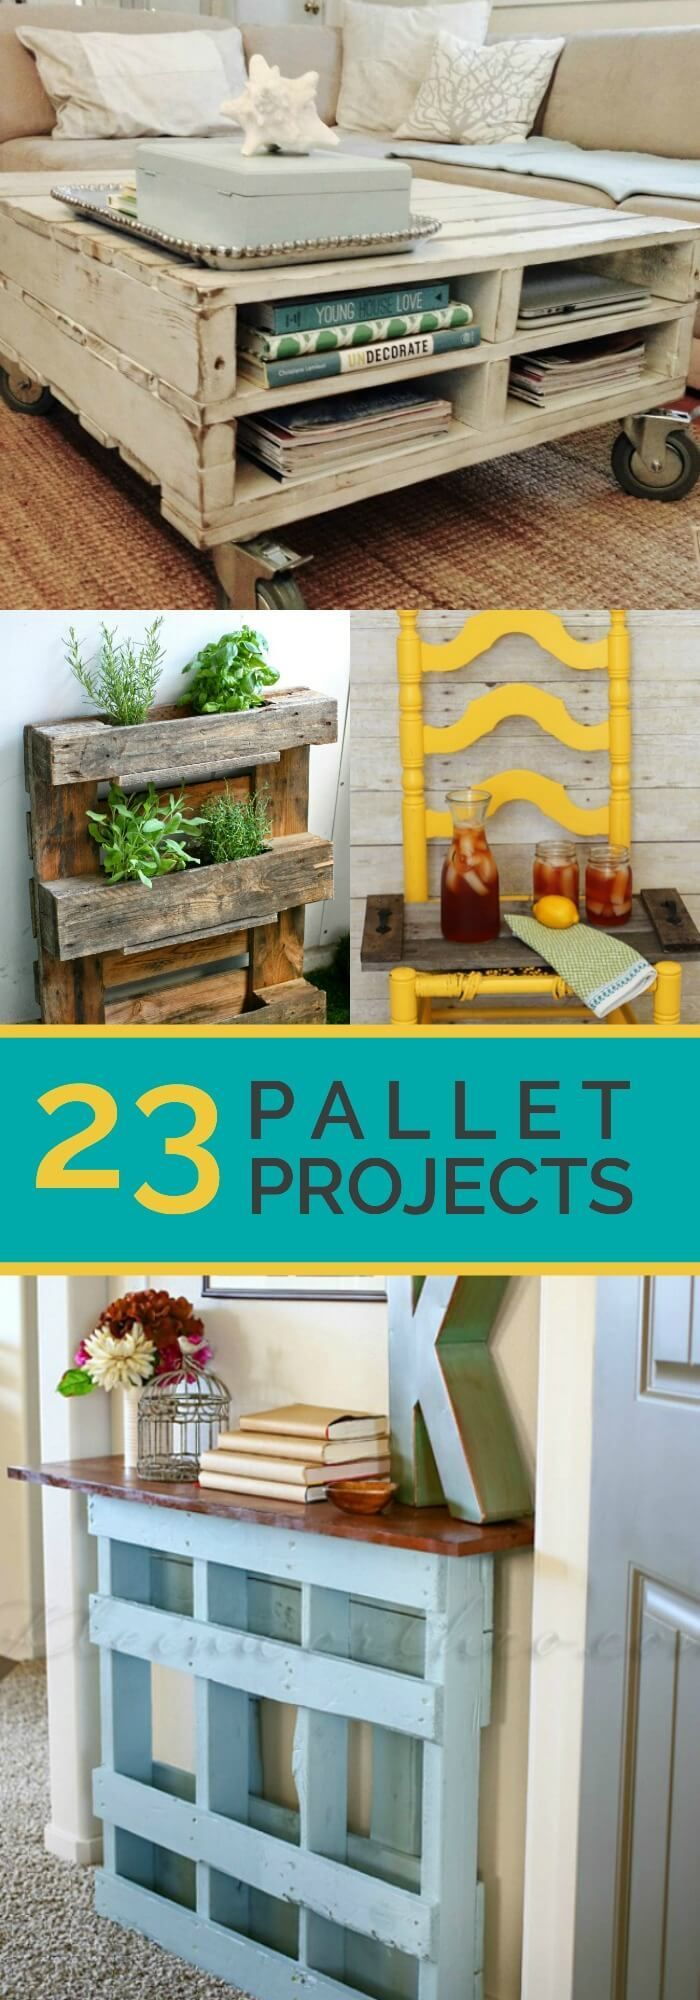 410 best DIY and Crafts images on Pinterest | Crafts, Garlands and ...